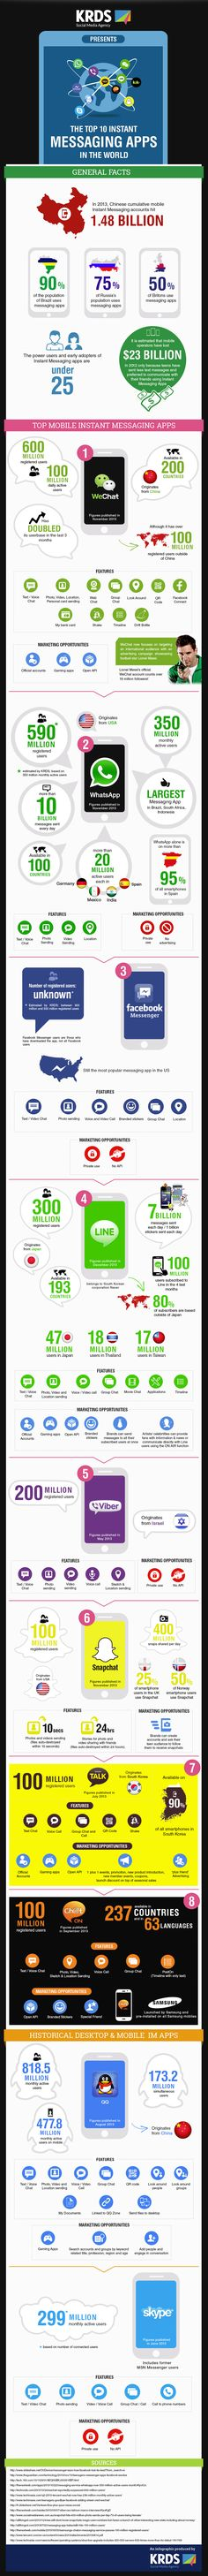 Top 10 Apps for Instant Messaging (Infographic)